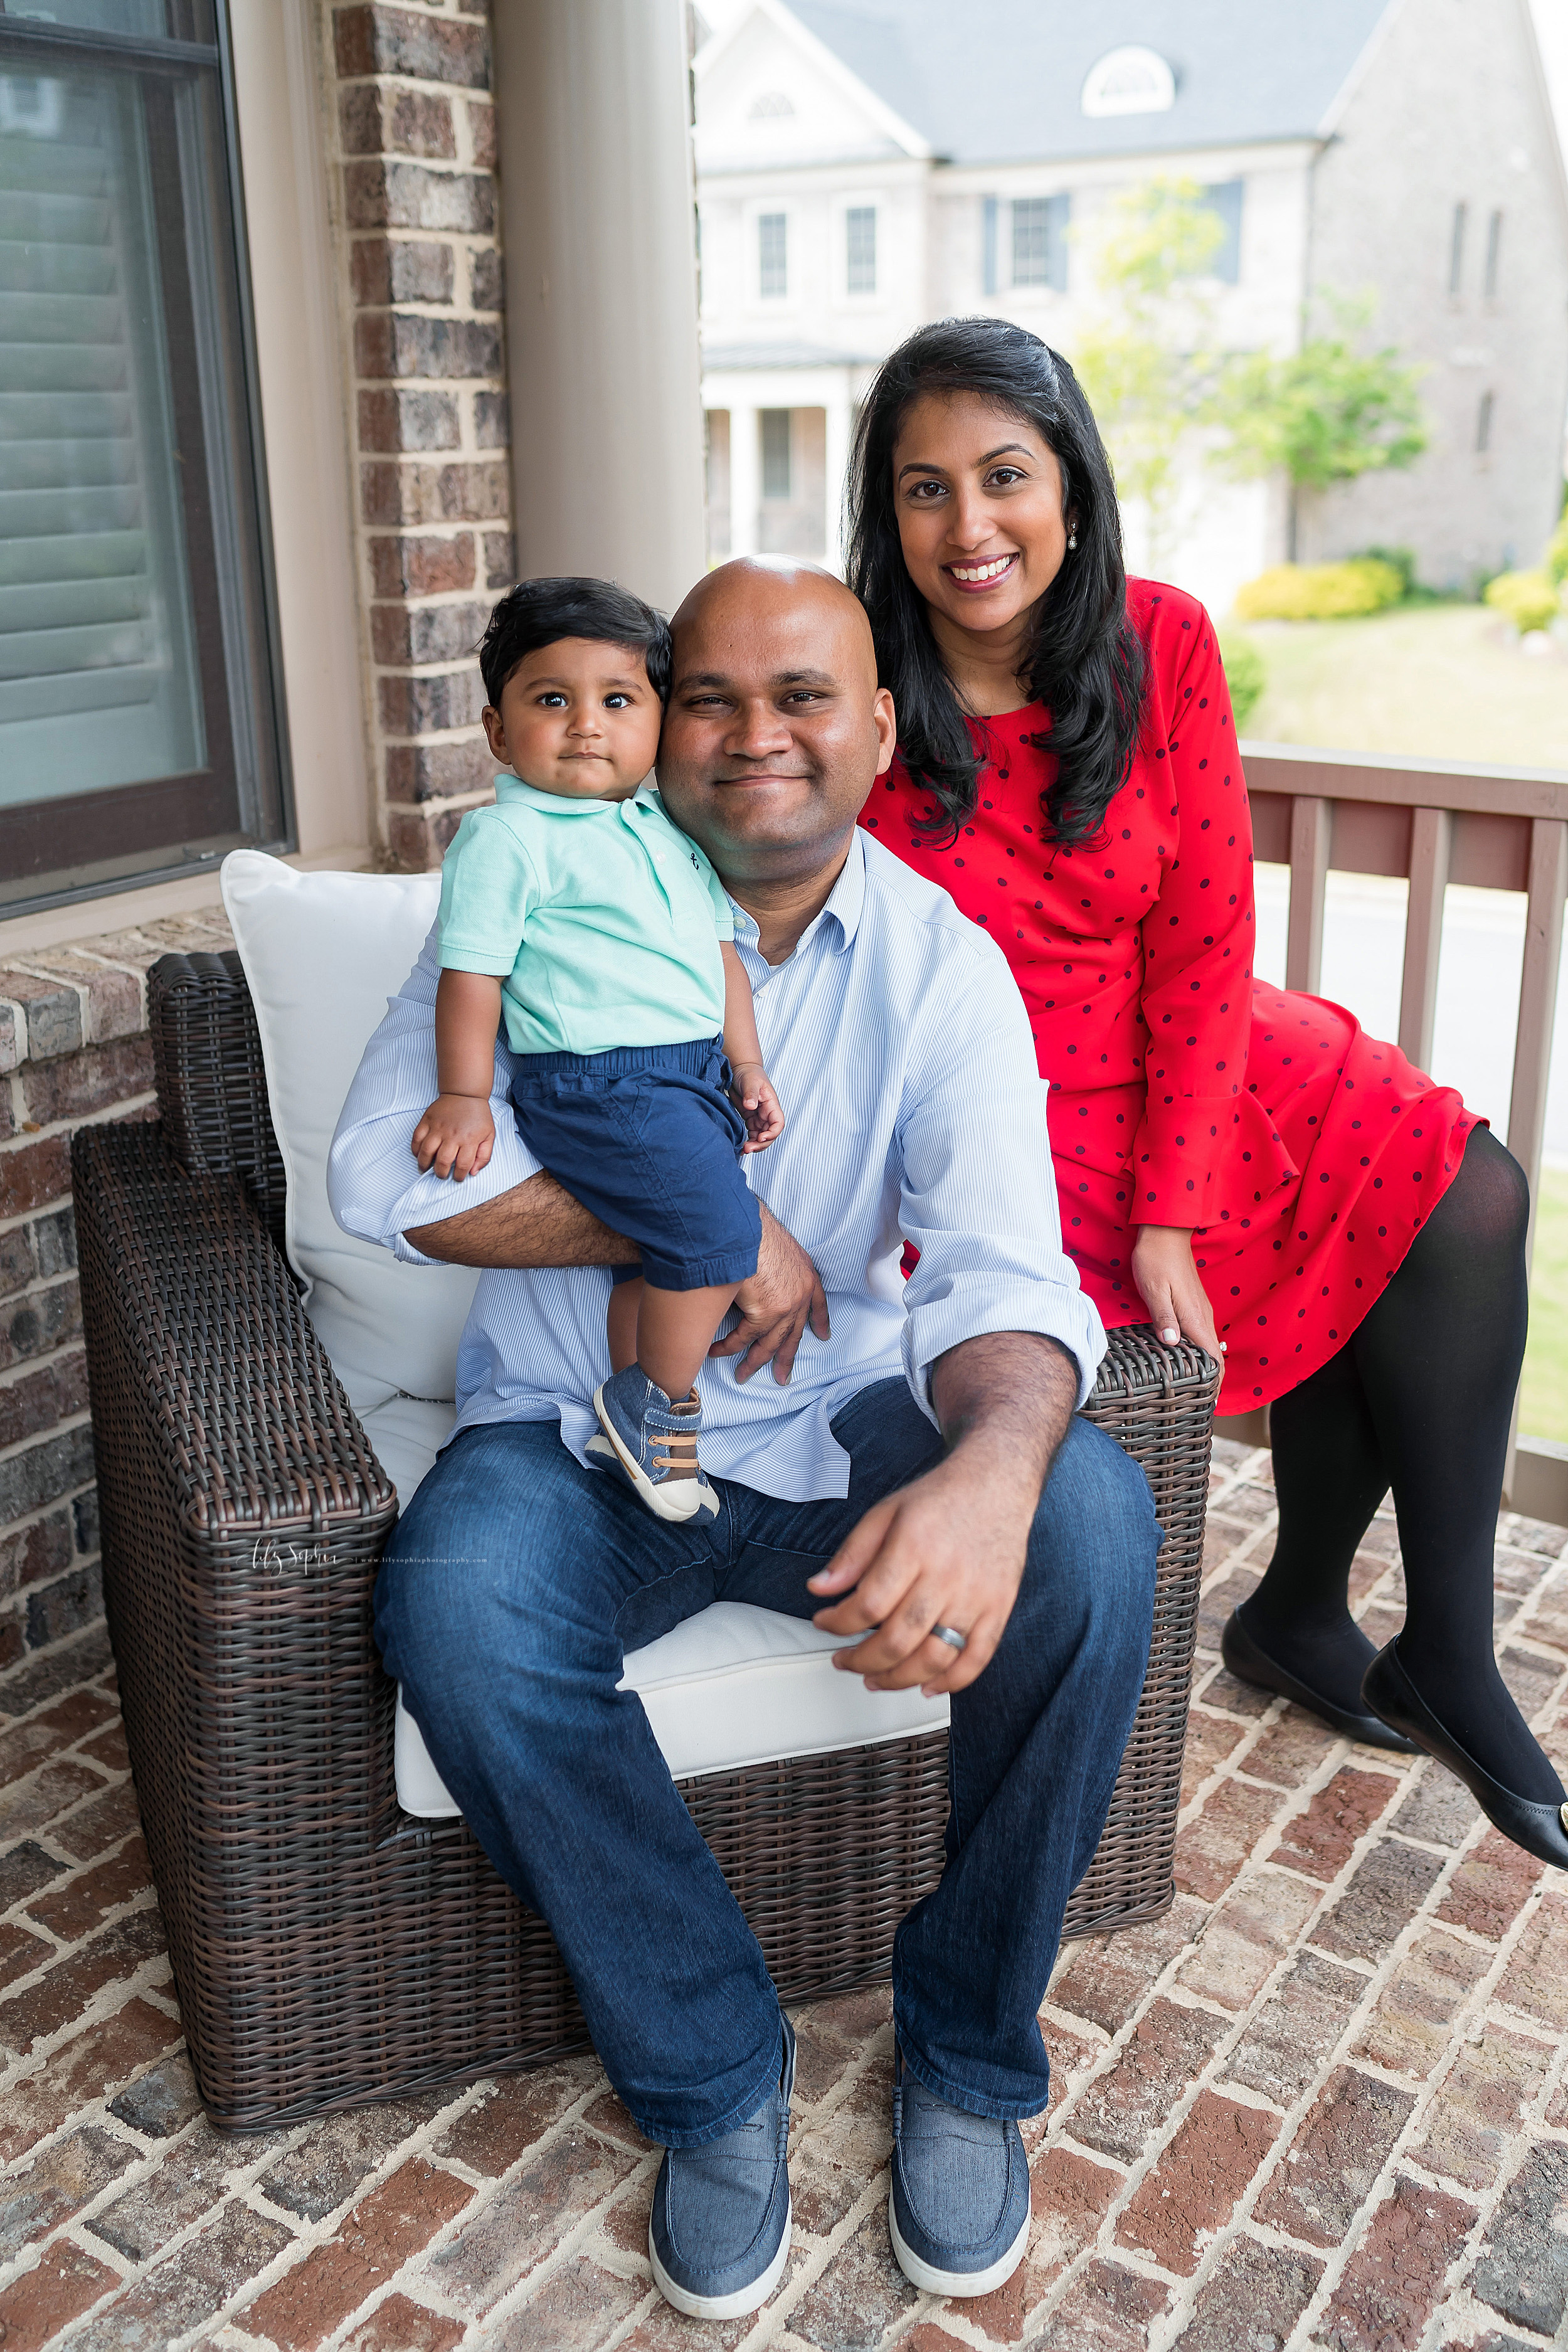 atlanta-brookhaven-east-cobb-marietta-candler-park-sandy-springs-buckhead-virginia-highlands-west-end-decatur-lily-sophia-photography-in-home-lifestyle-session-eight-month-milestone-indian-family_1672.jpg